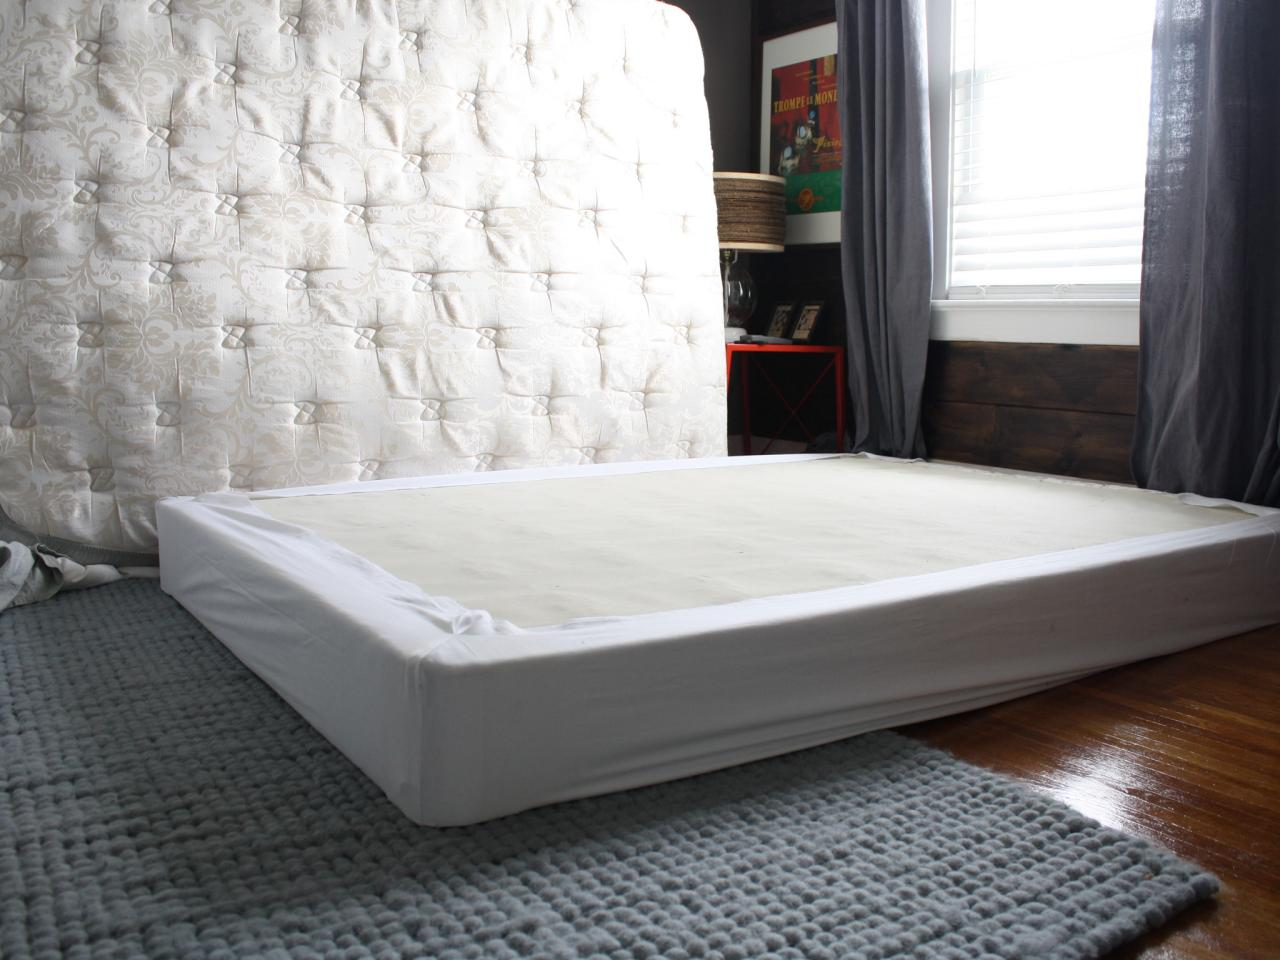 Box Spring Cover Your Boxspring With An Easy Fabric Wrap How Tos Diy